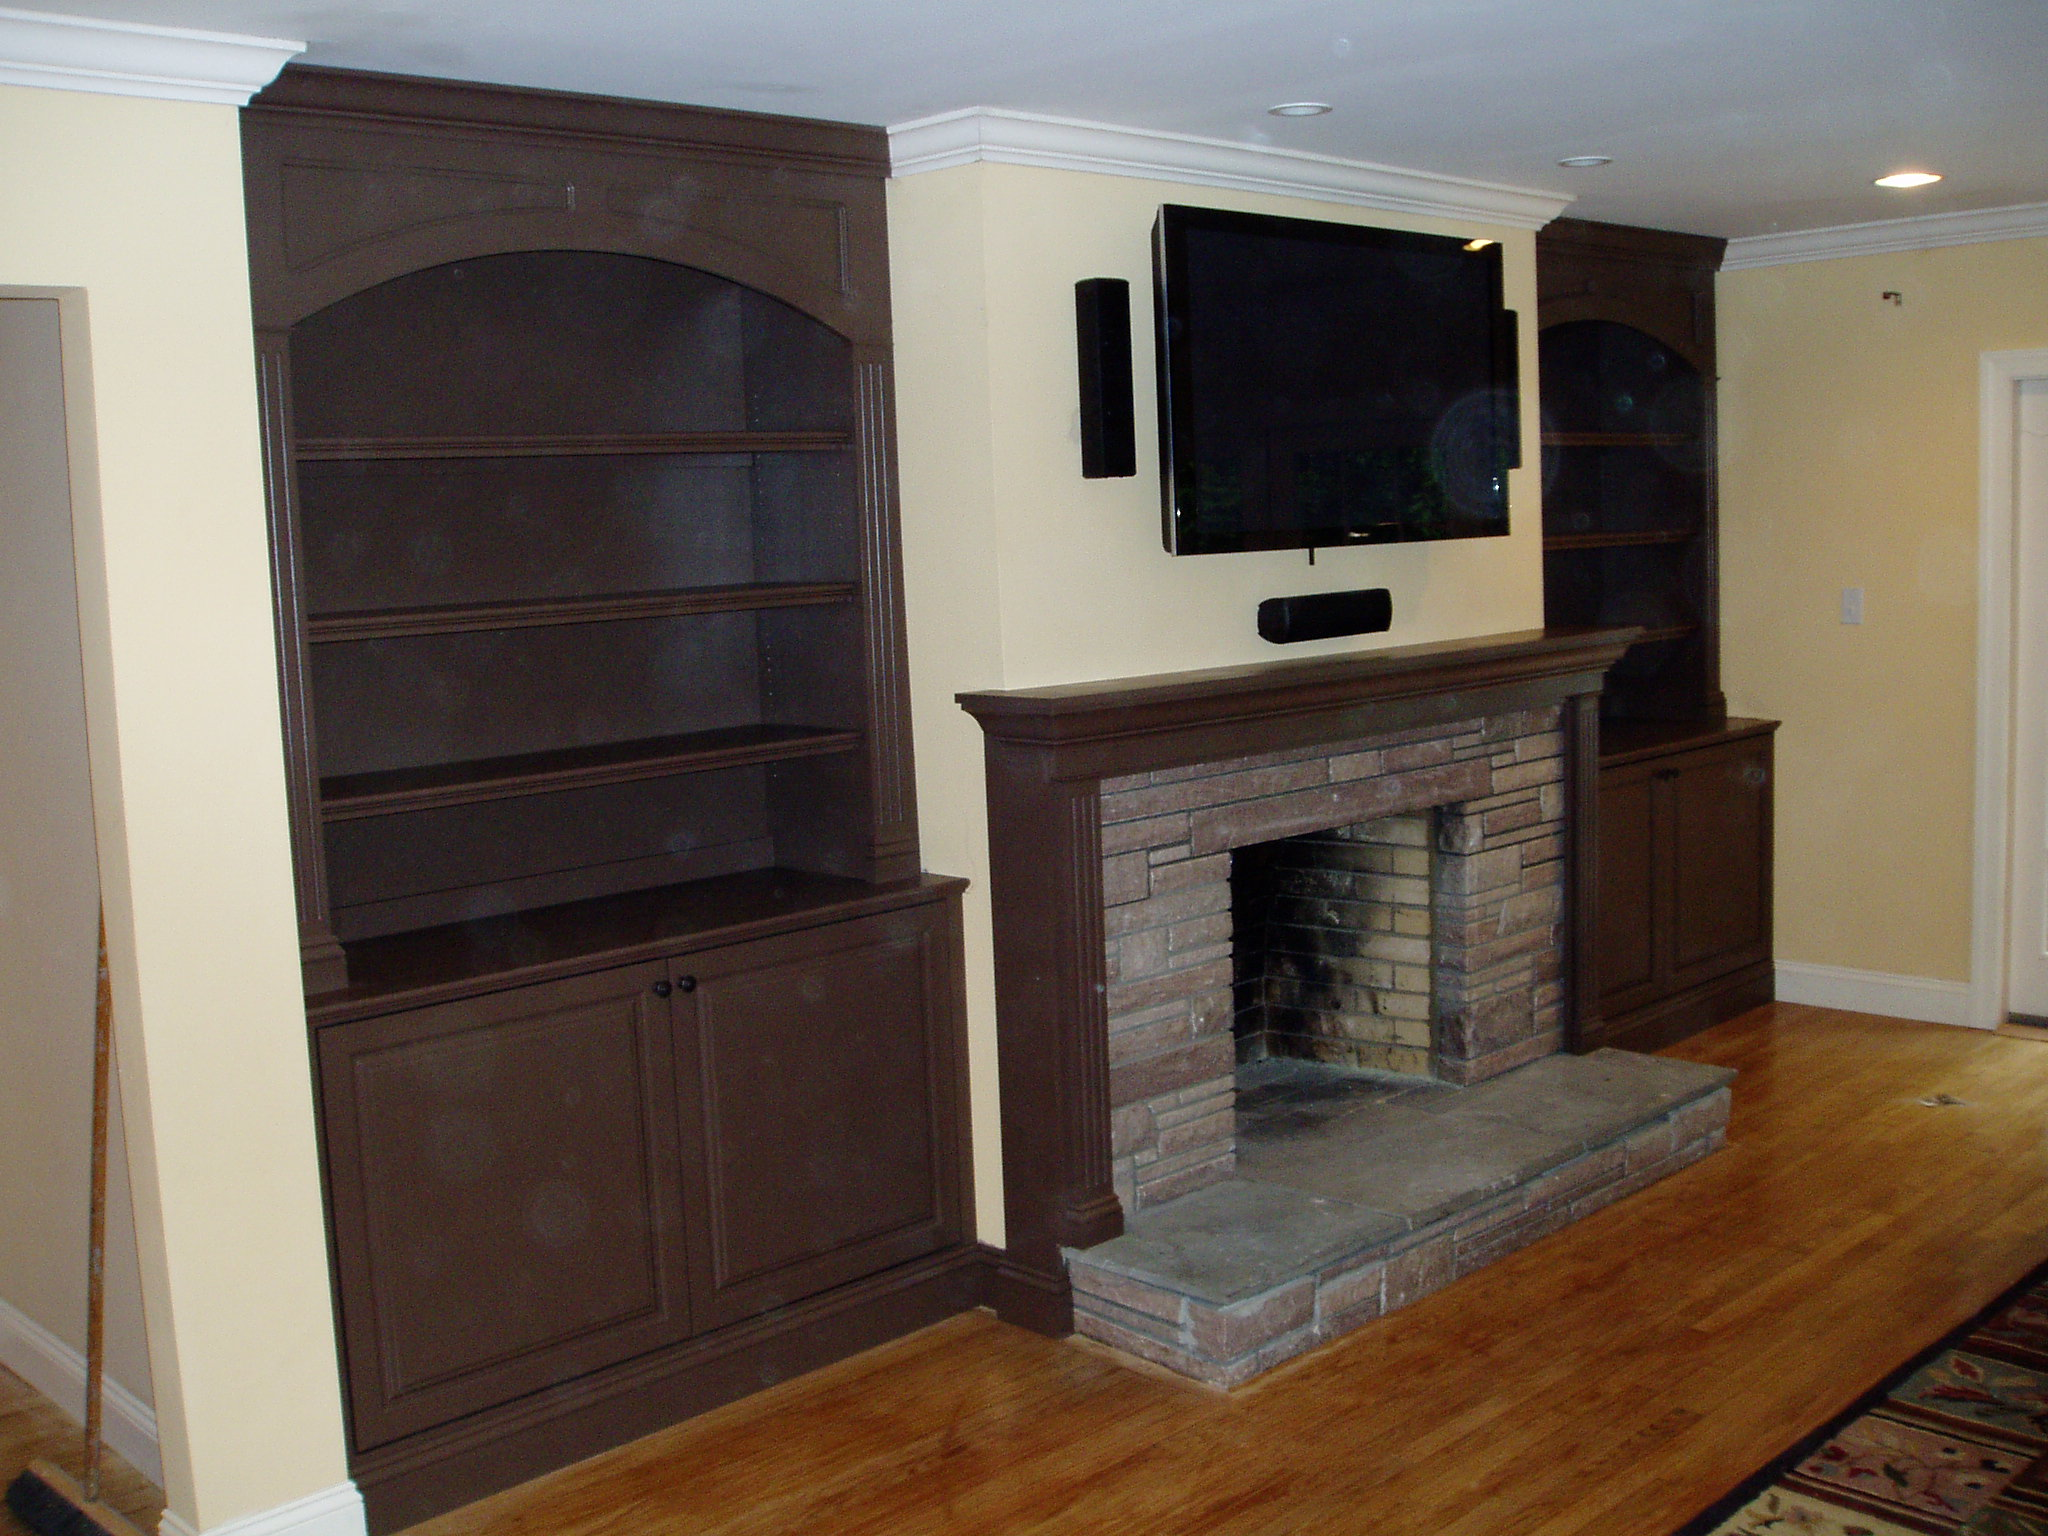 Where your custom woodworking ideas become reality.